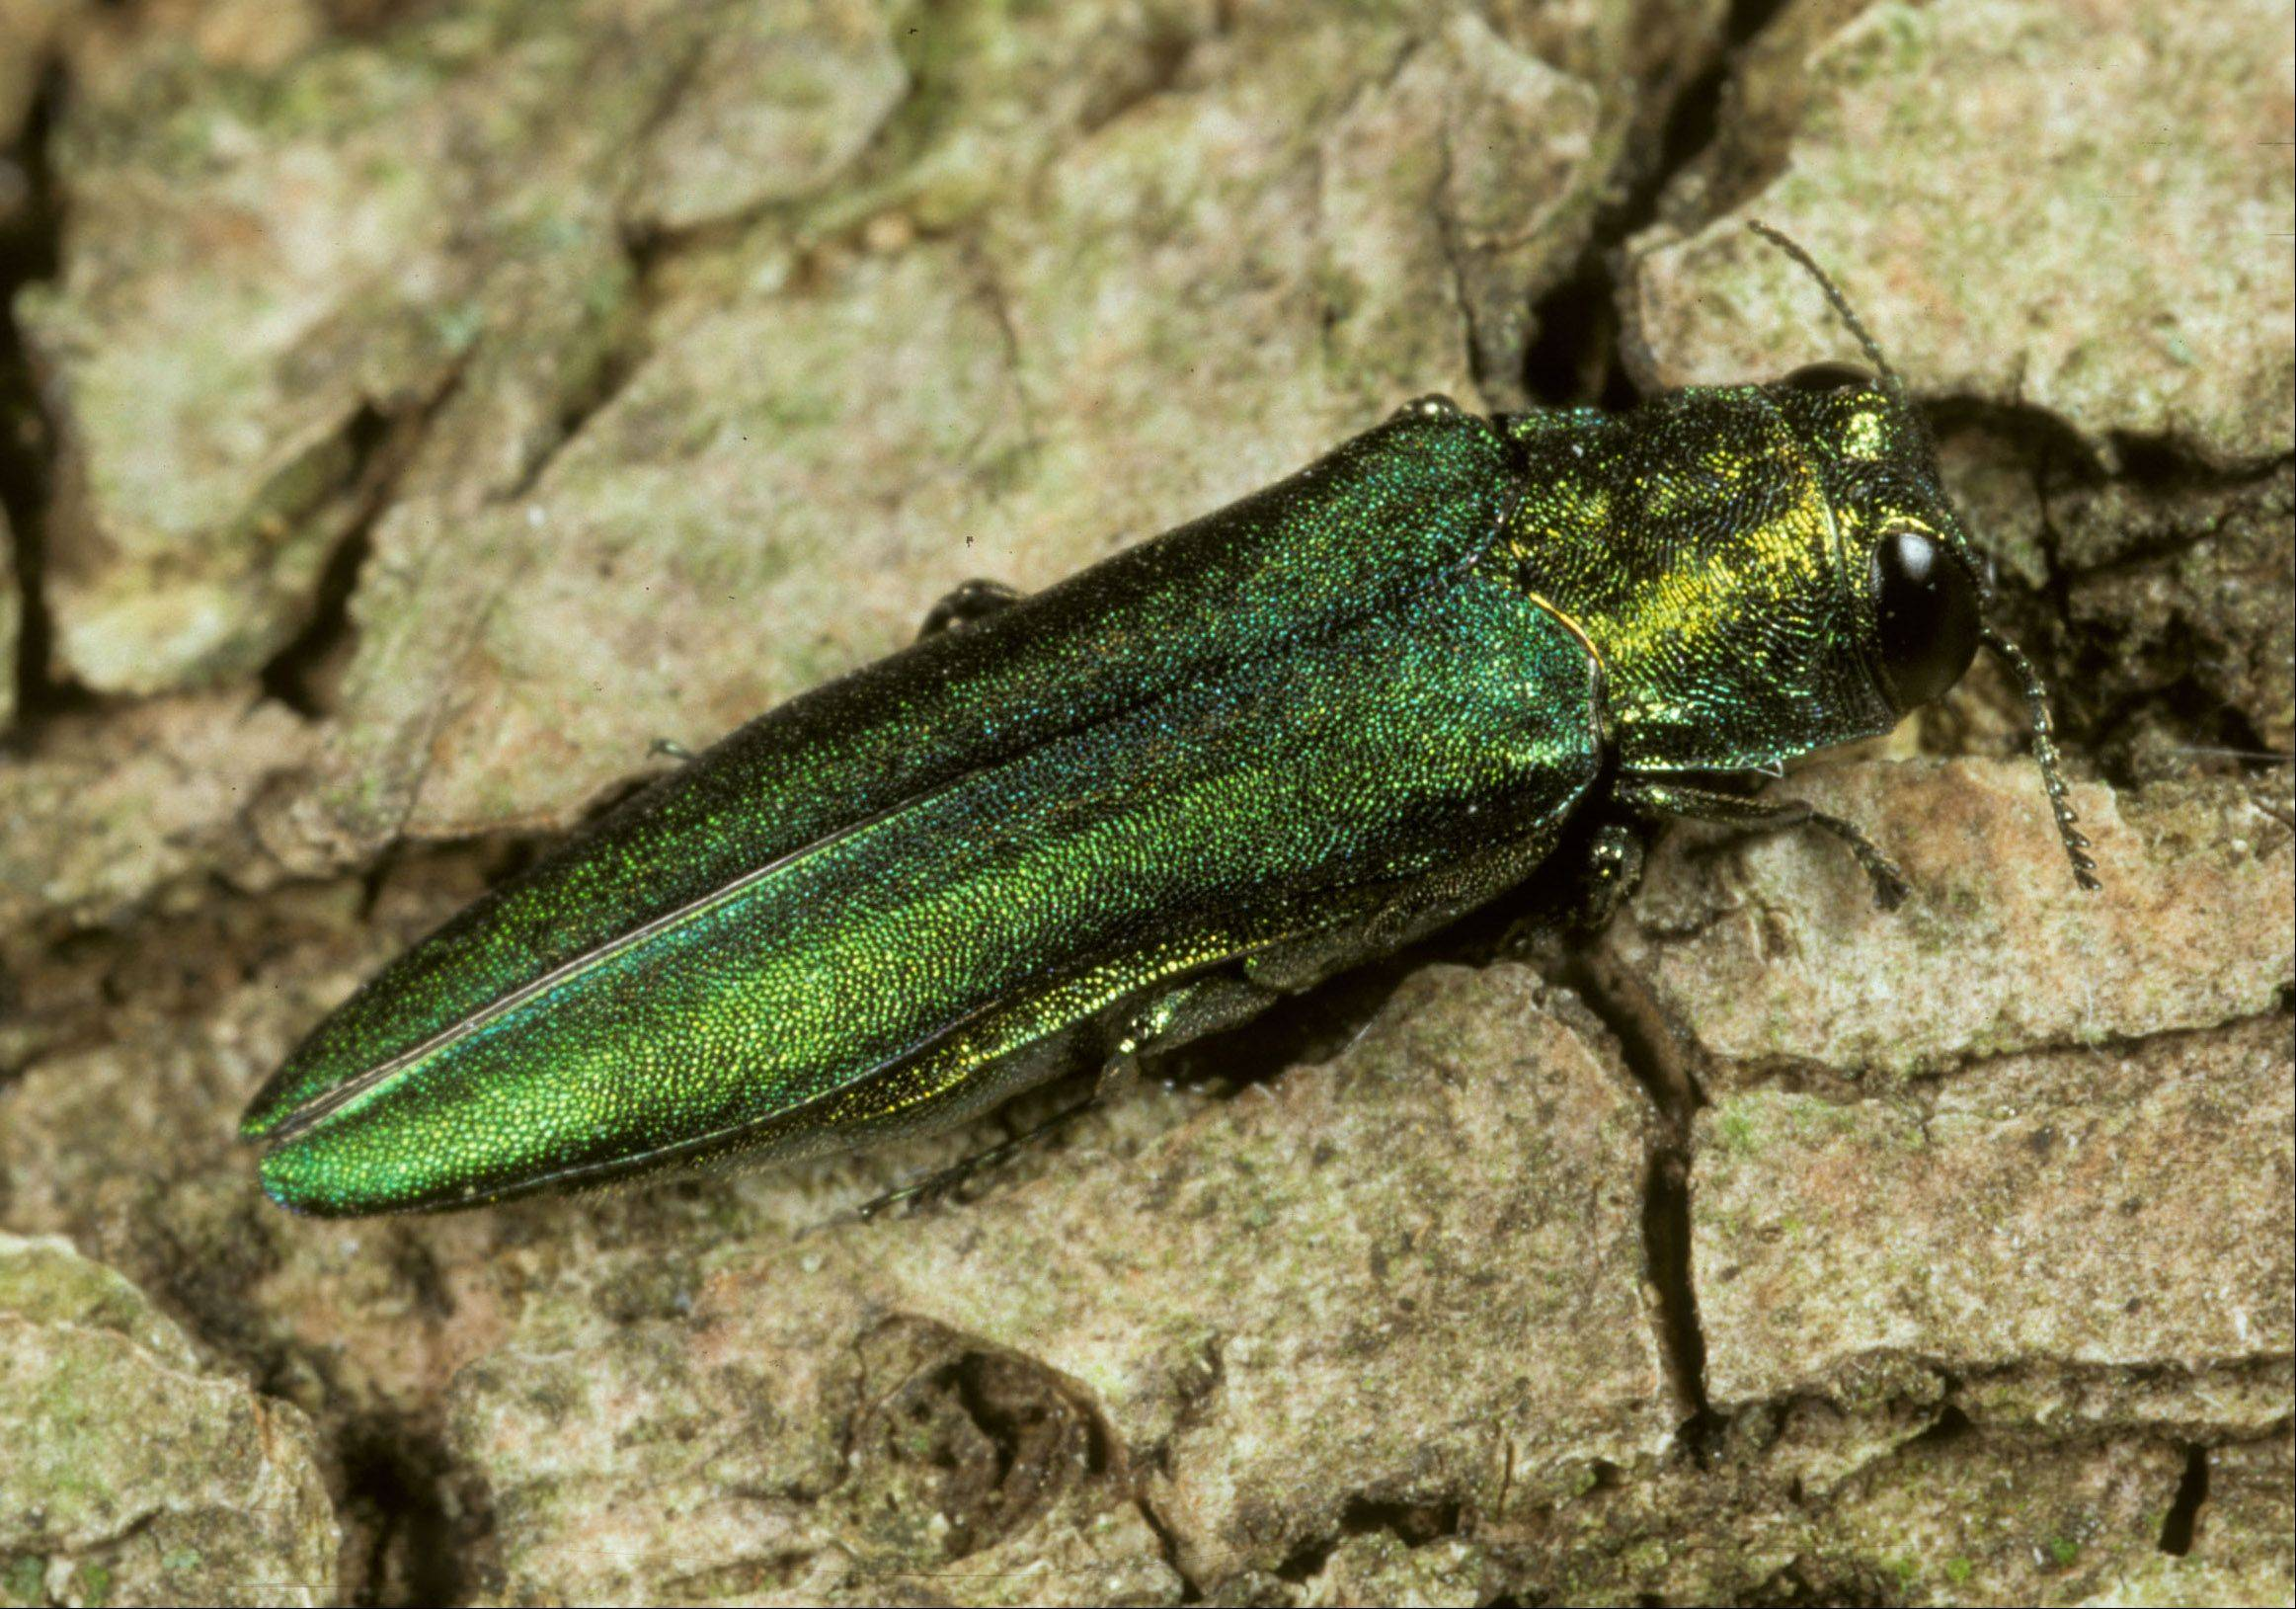 Carpentersville trustees may hire a company to cut down 31 large trees infested with the emerald ash borer because the trees are too close to homes and power lines.